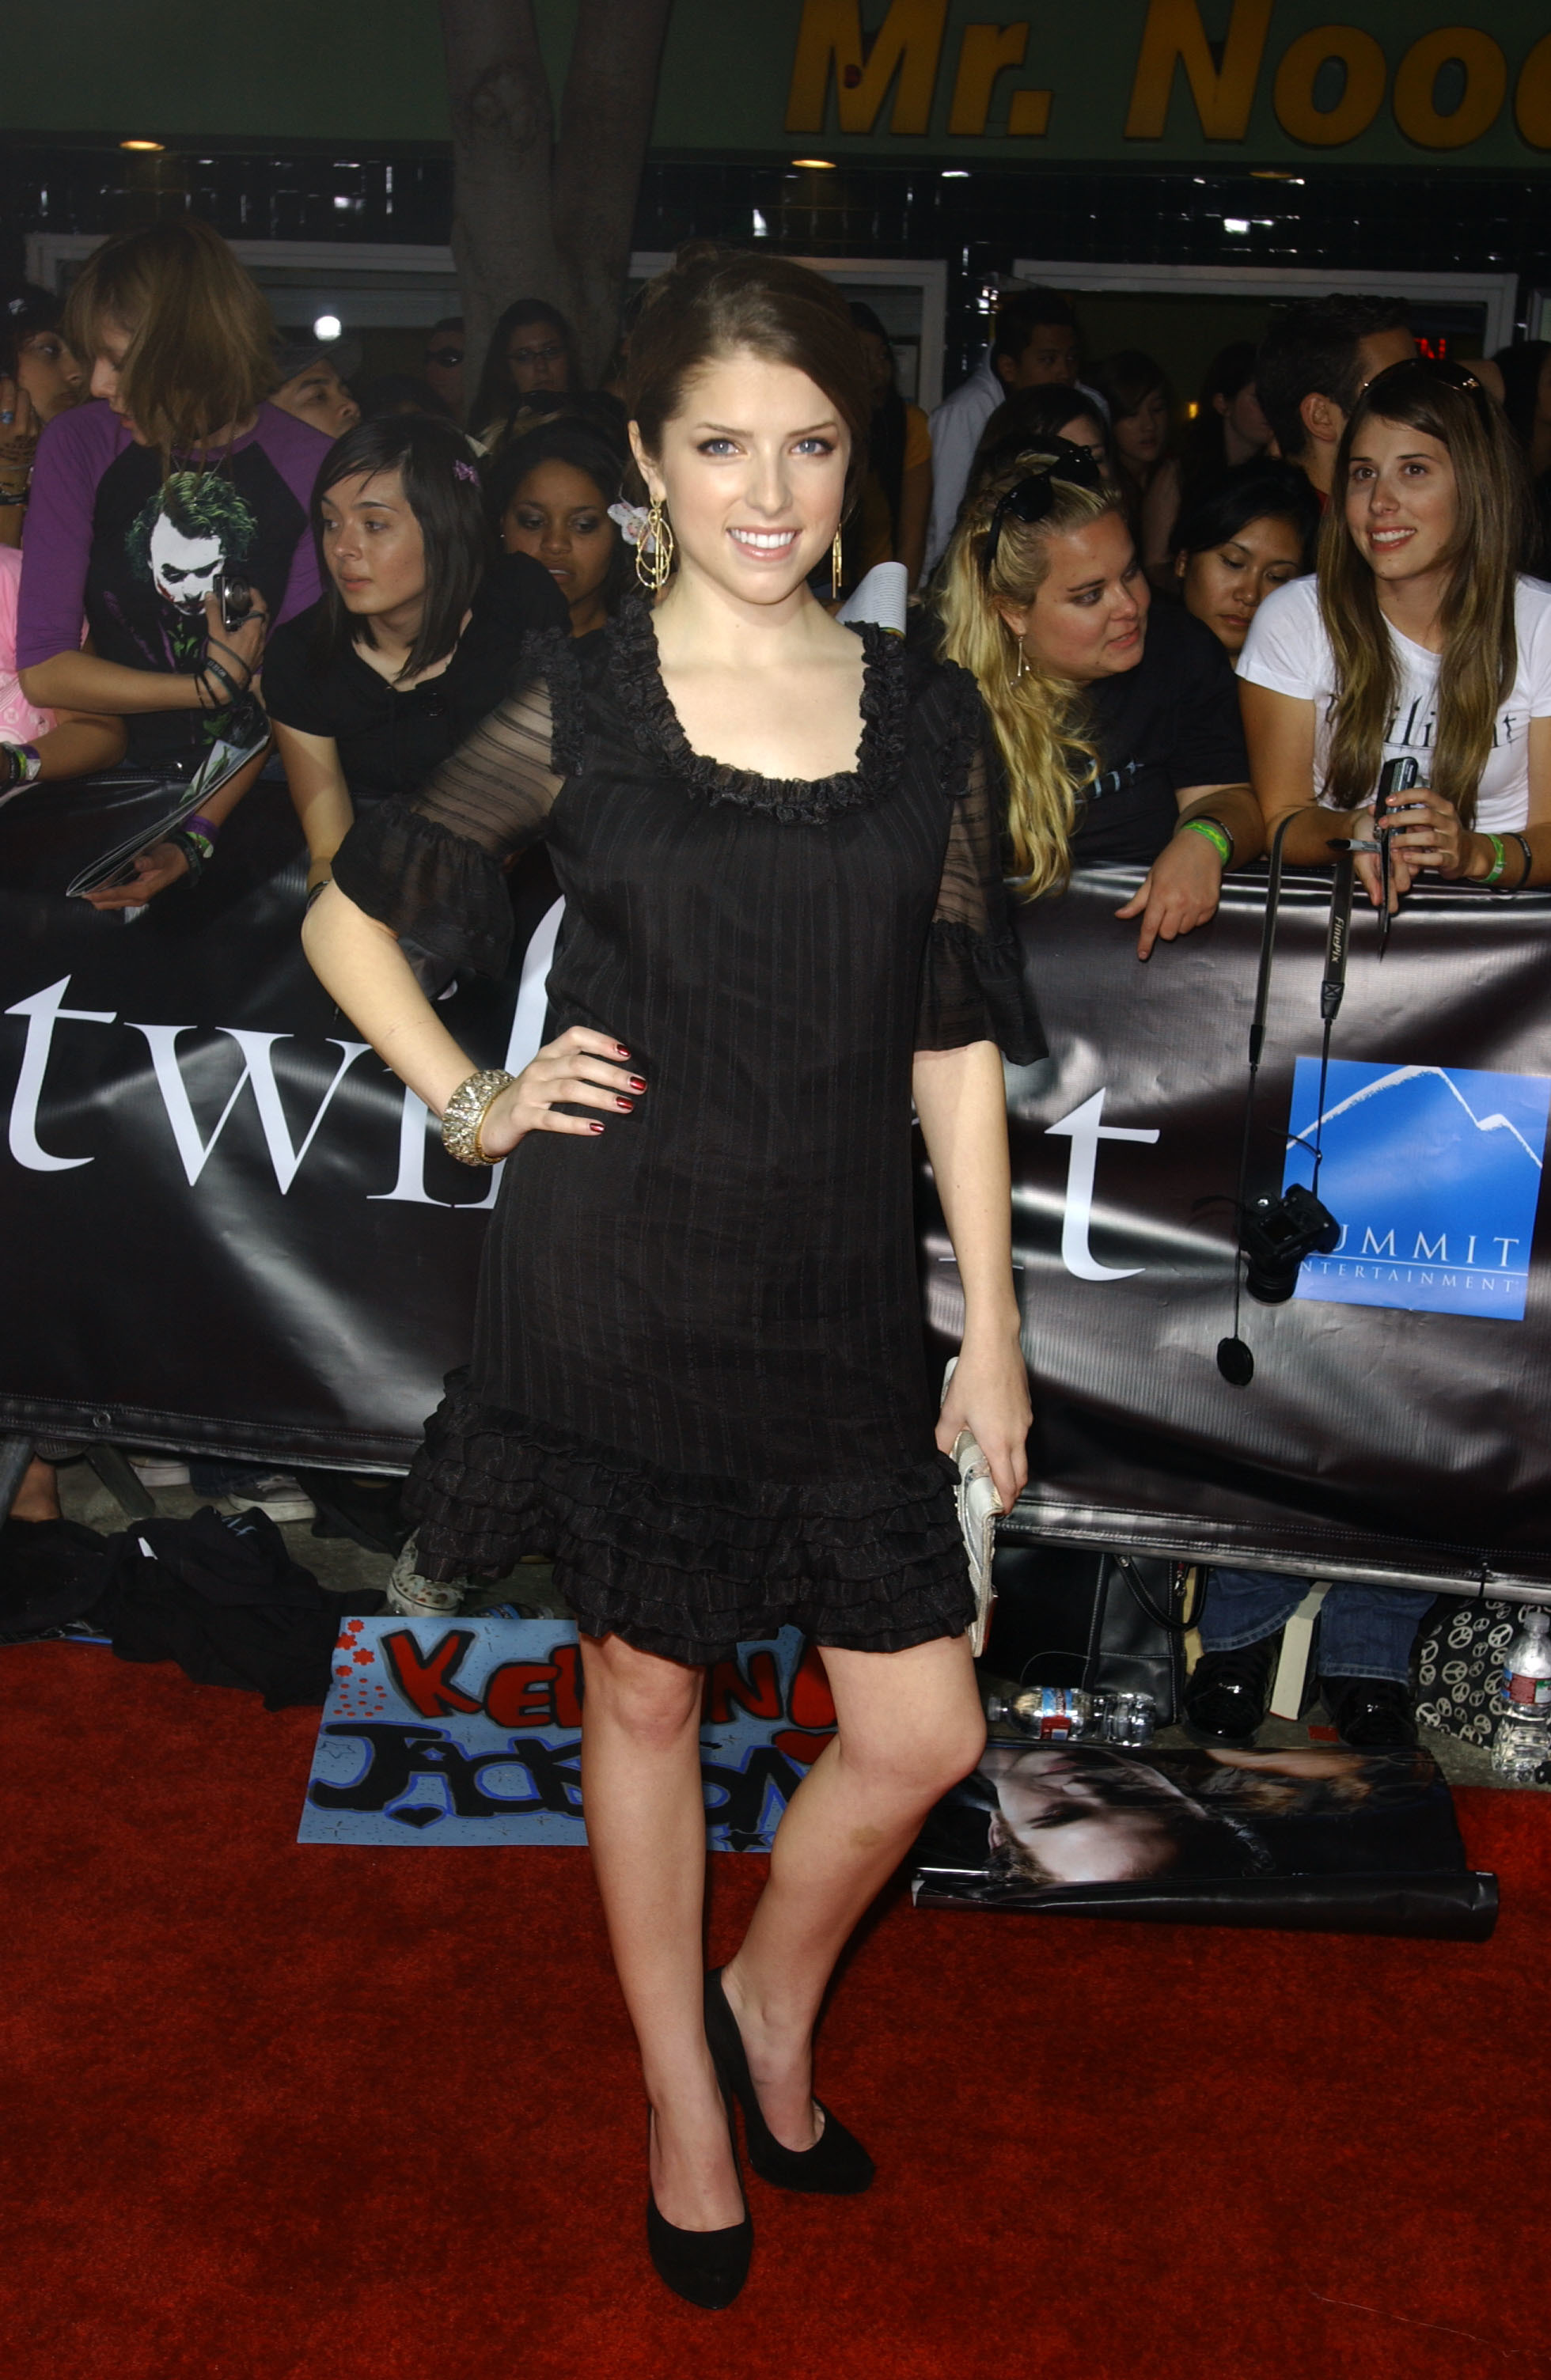 """Anna Kendrick attends the """"Twilight"""" premiere in Los Angeles on Nov. 17, 2008."""